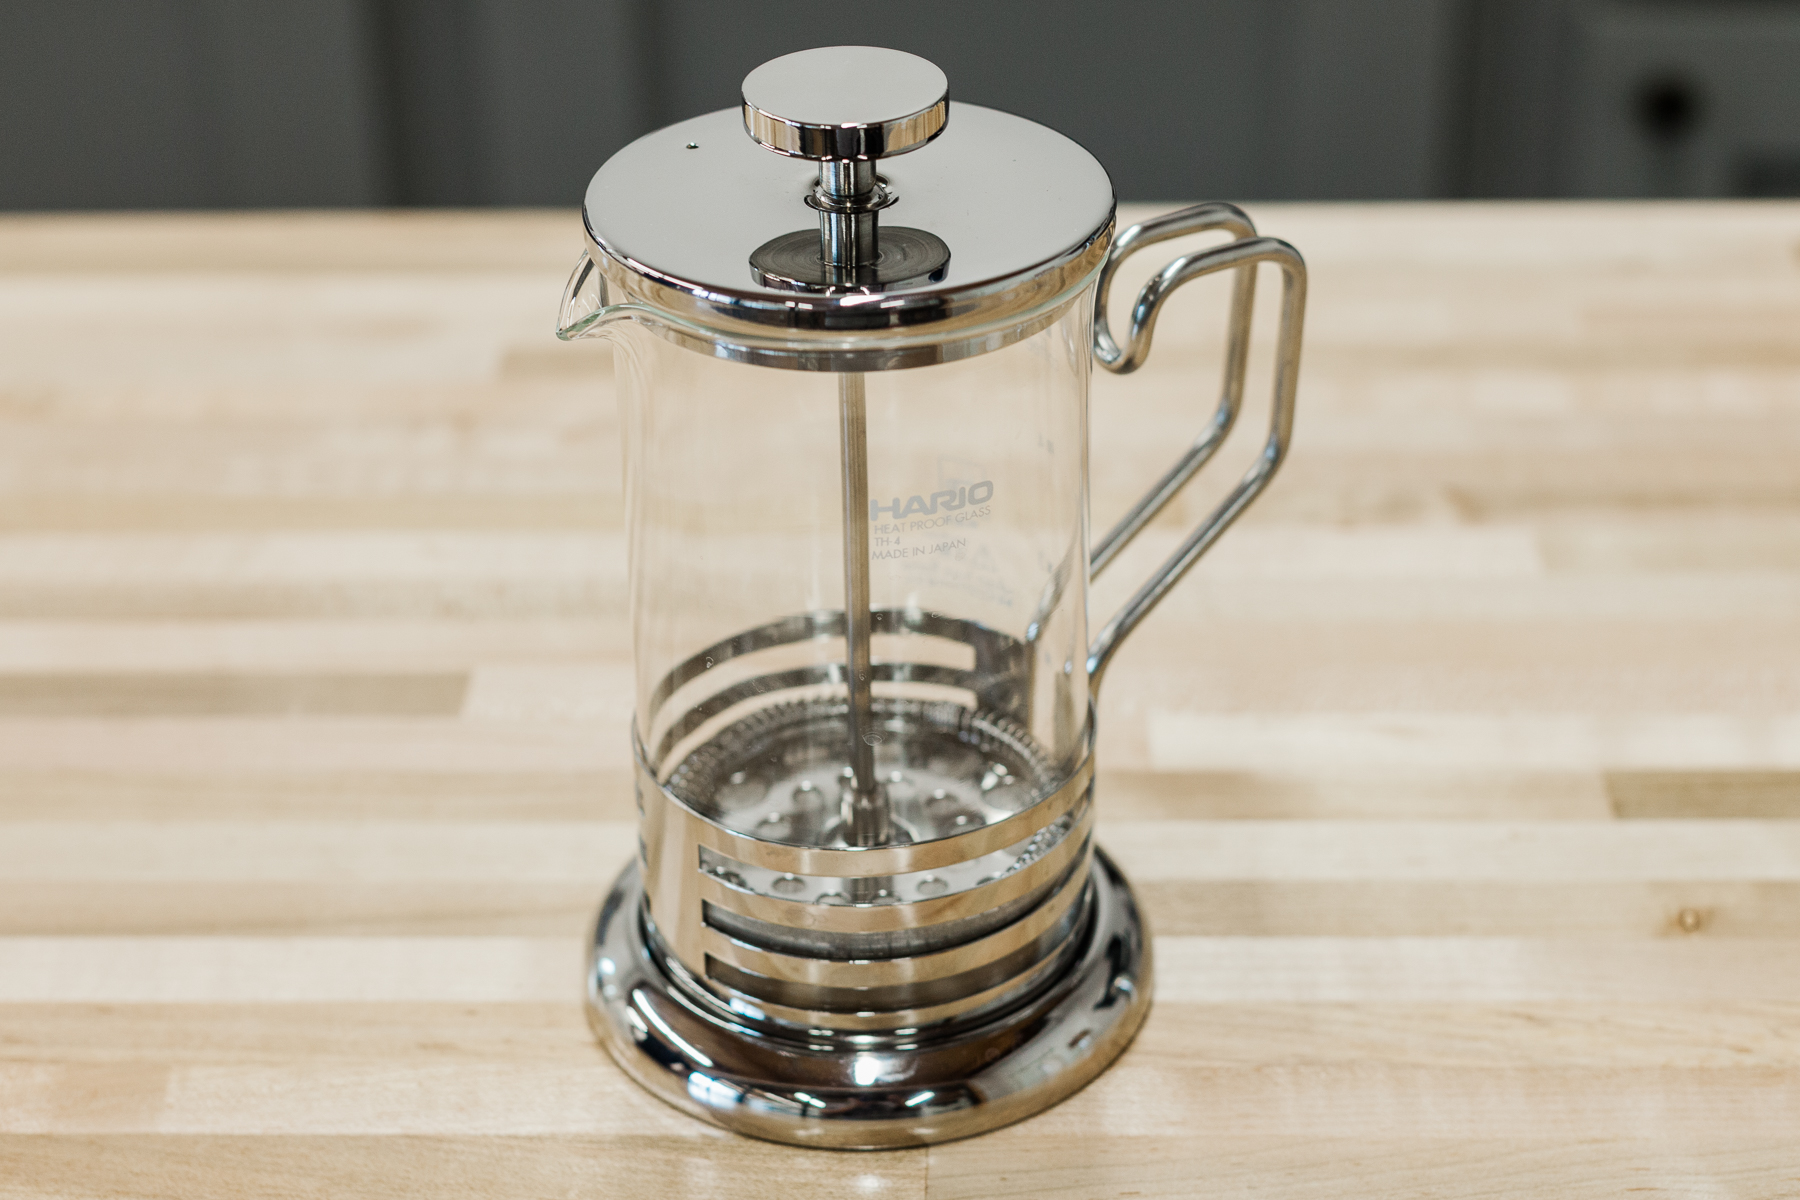 600 milliliter single-walled, glass Hario French press with metal accents.